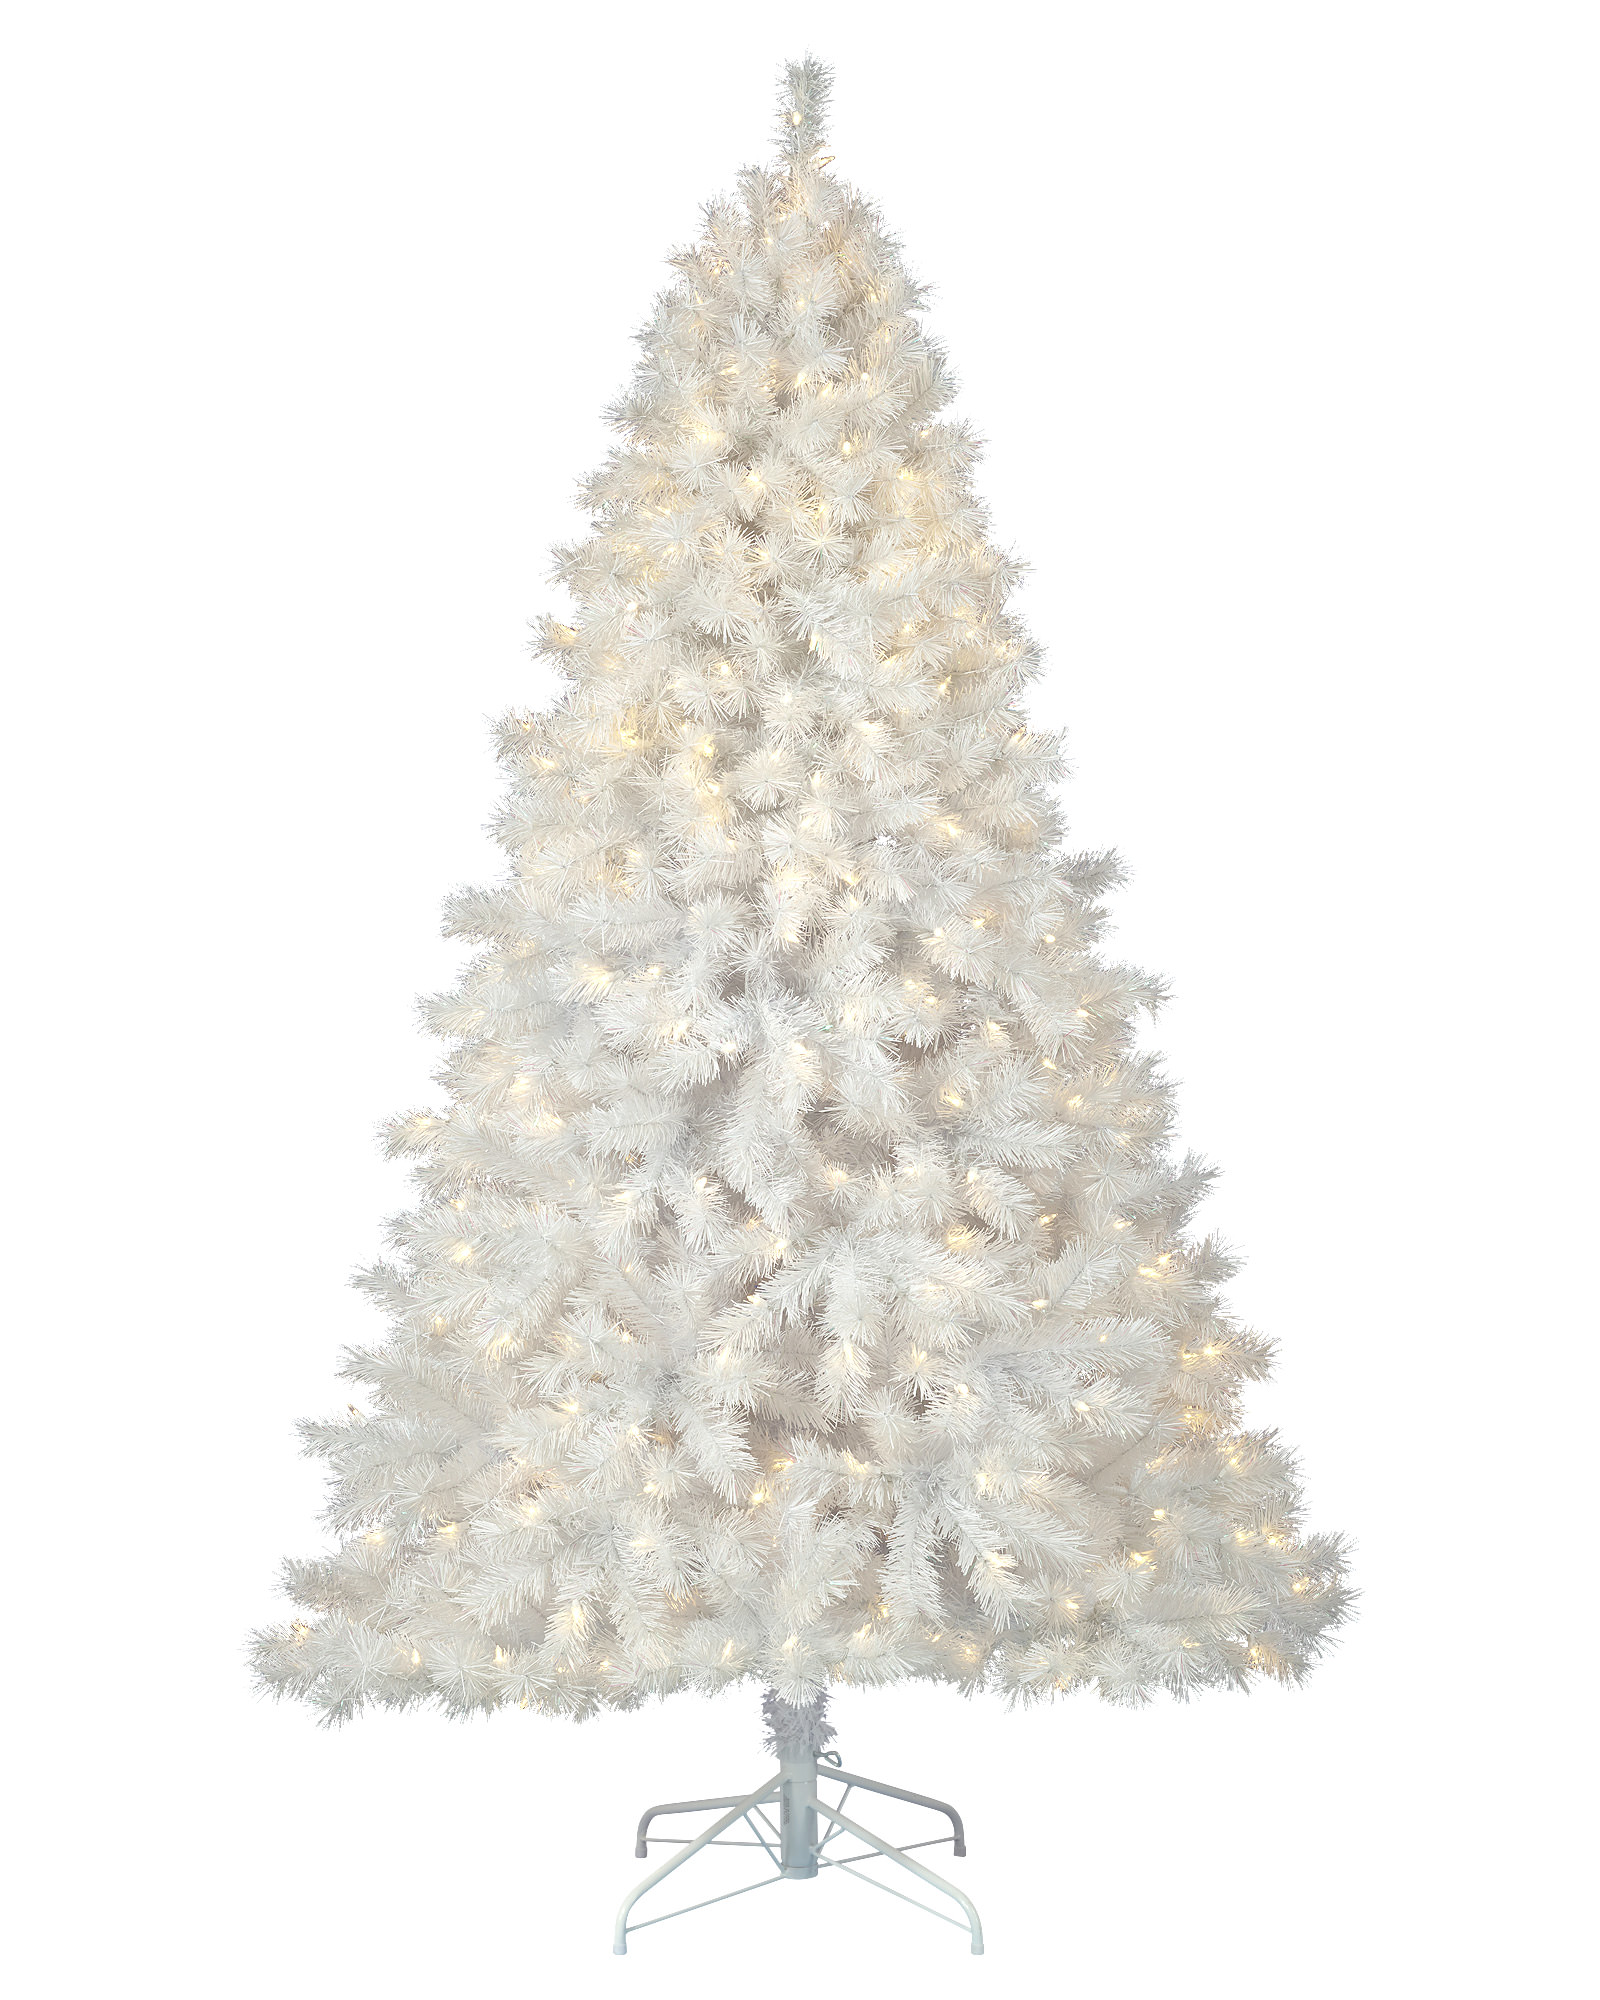 White Christmas Trees Wallpapers High Quality | Download Free